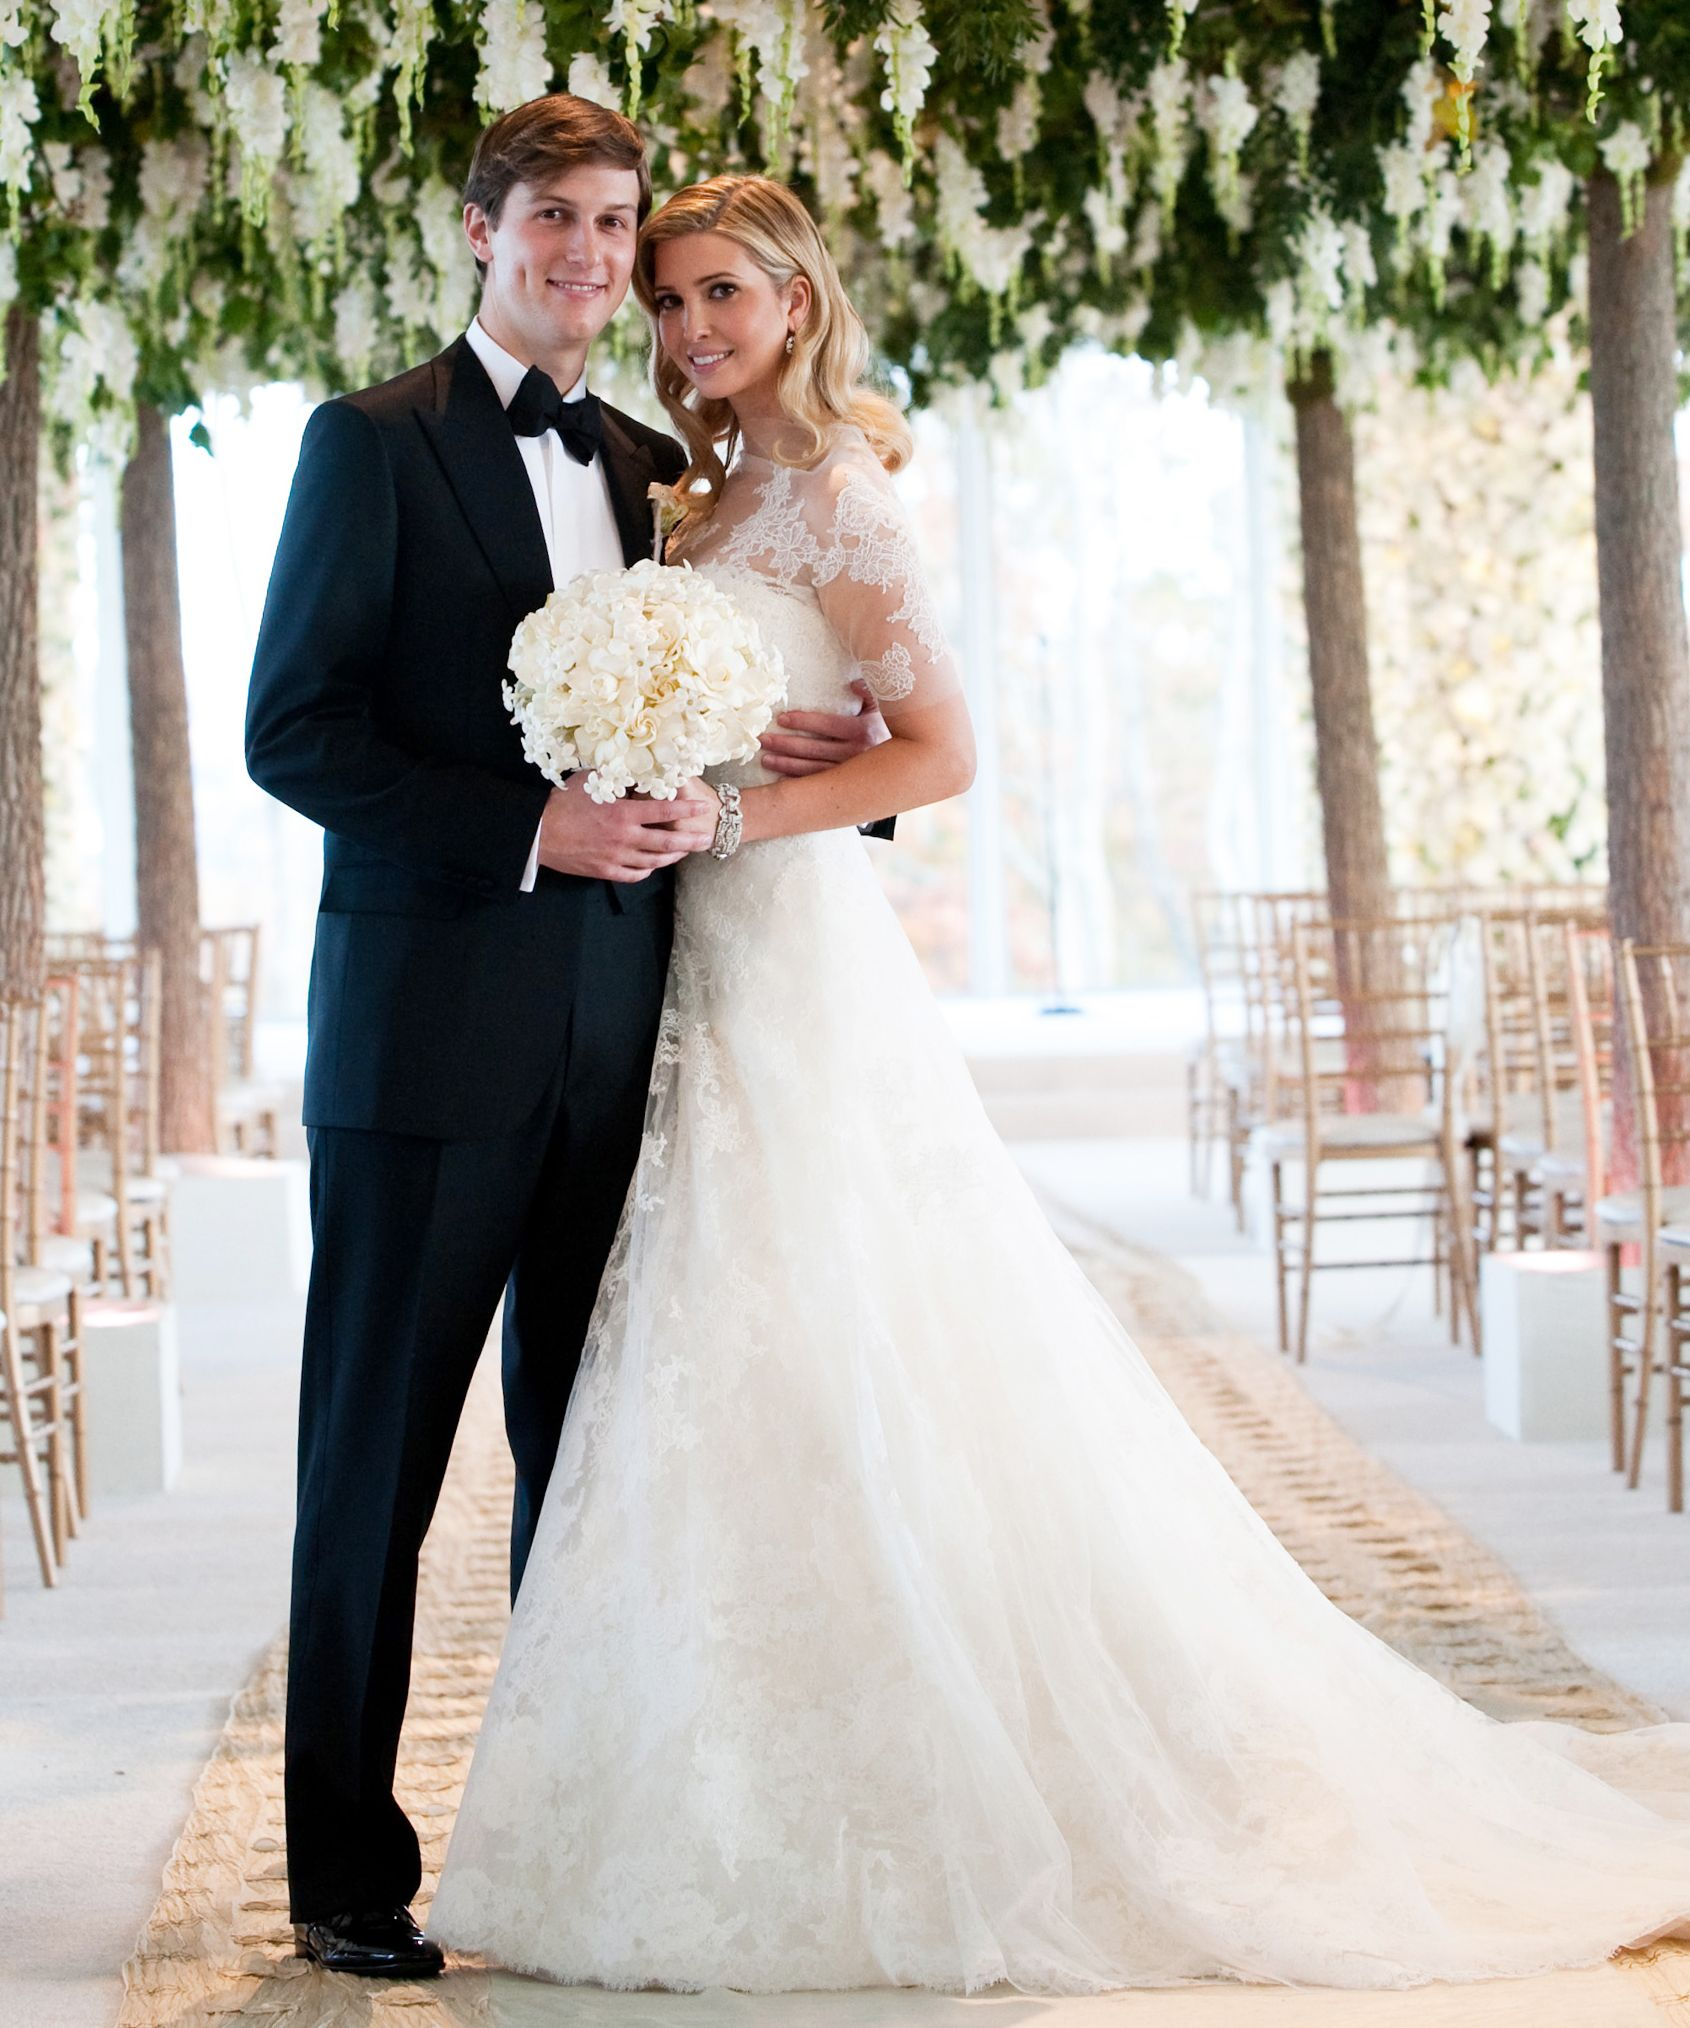 6 Gorgeous Celebrities Who Wore Vera Wang on Their Wedding Days in Honor of the Designer's Birthday - Ivanka Trump and Jared Kushner (2009) from InStyle.com